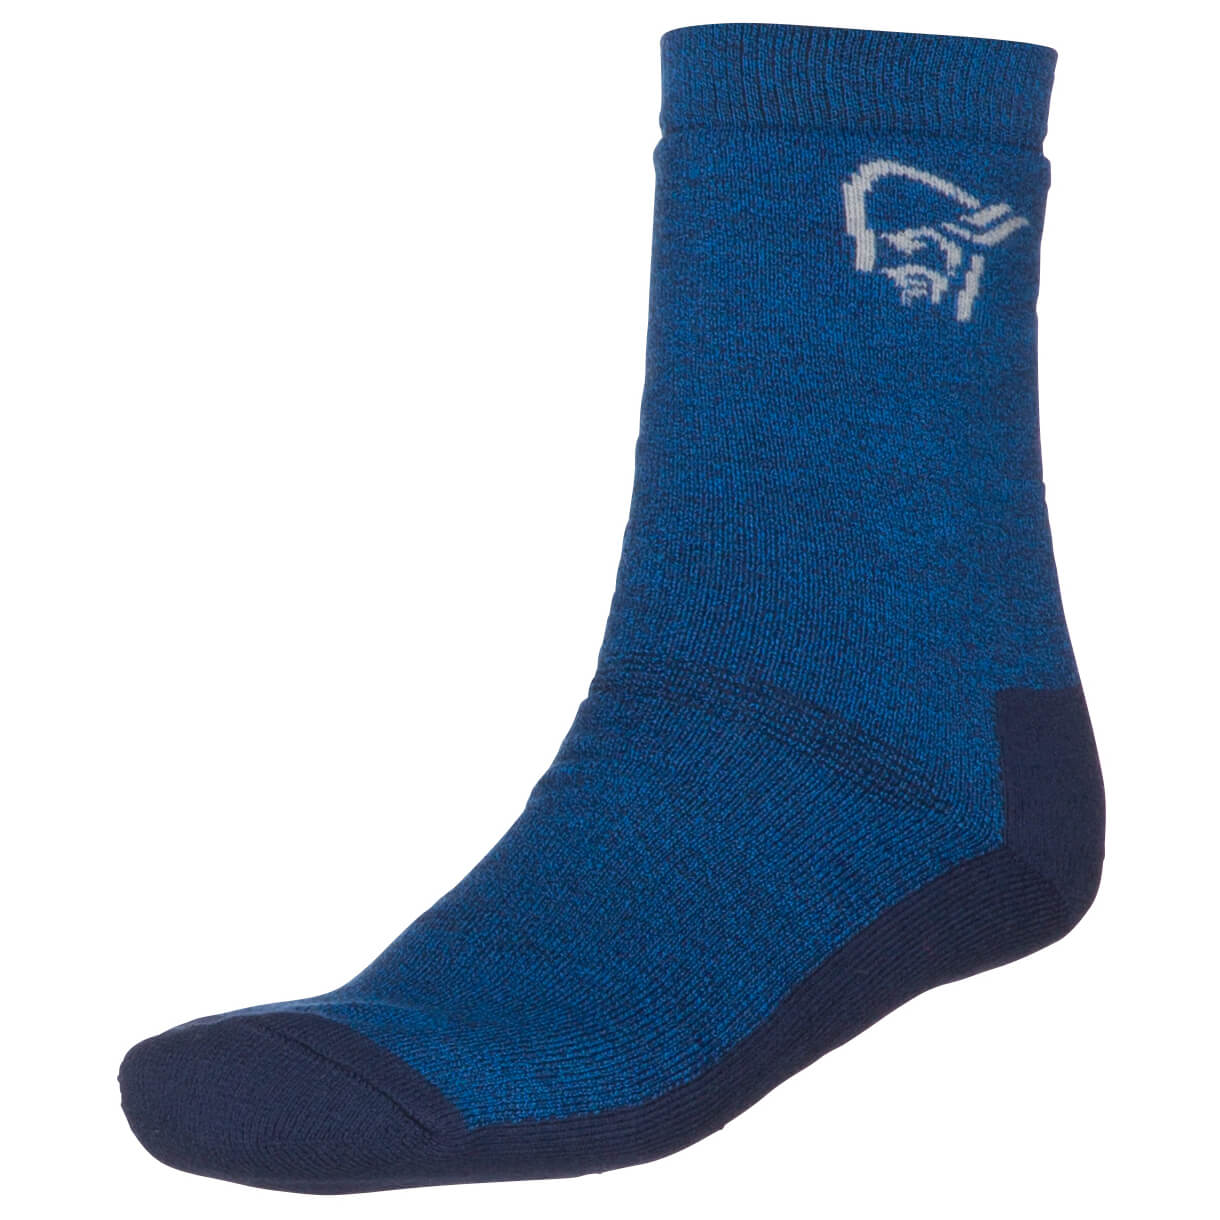 Norrøna - Svalbard Mid Weight Merino Socks - Trekkingsocken Indigo Night